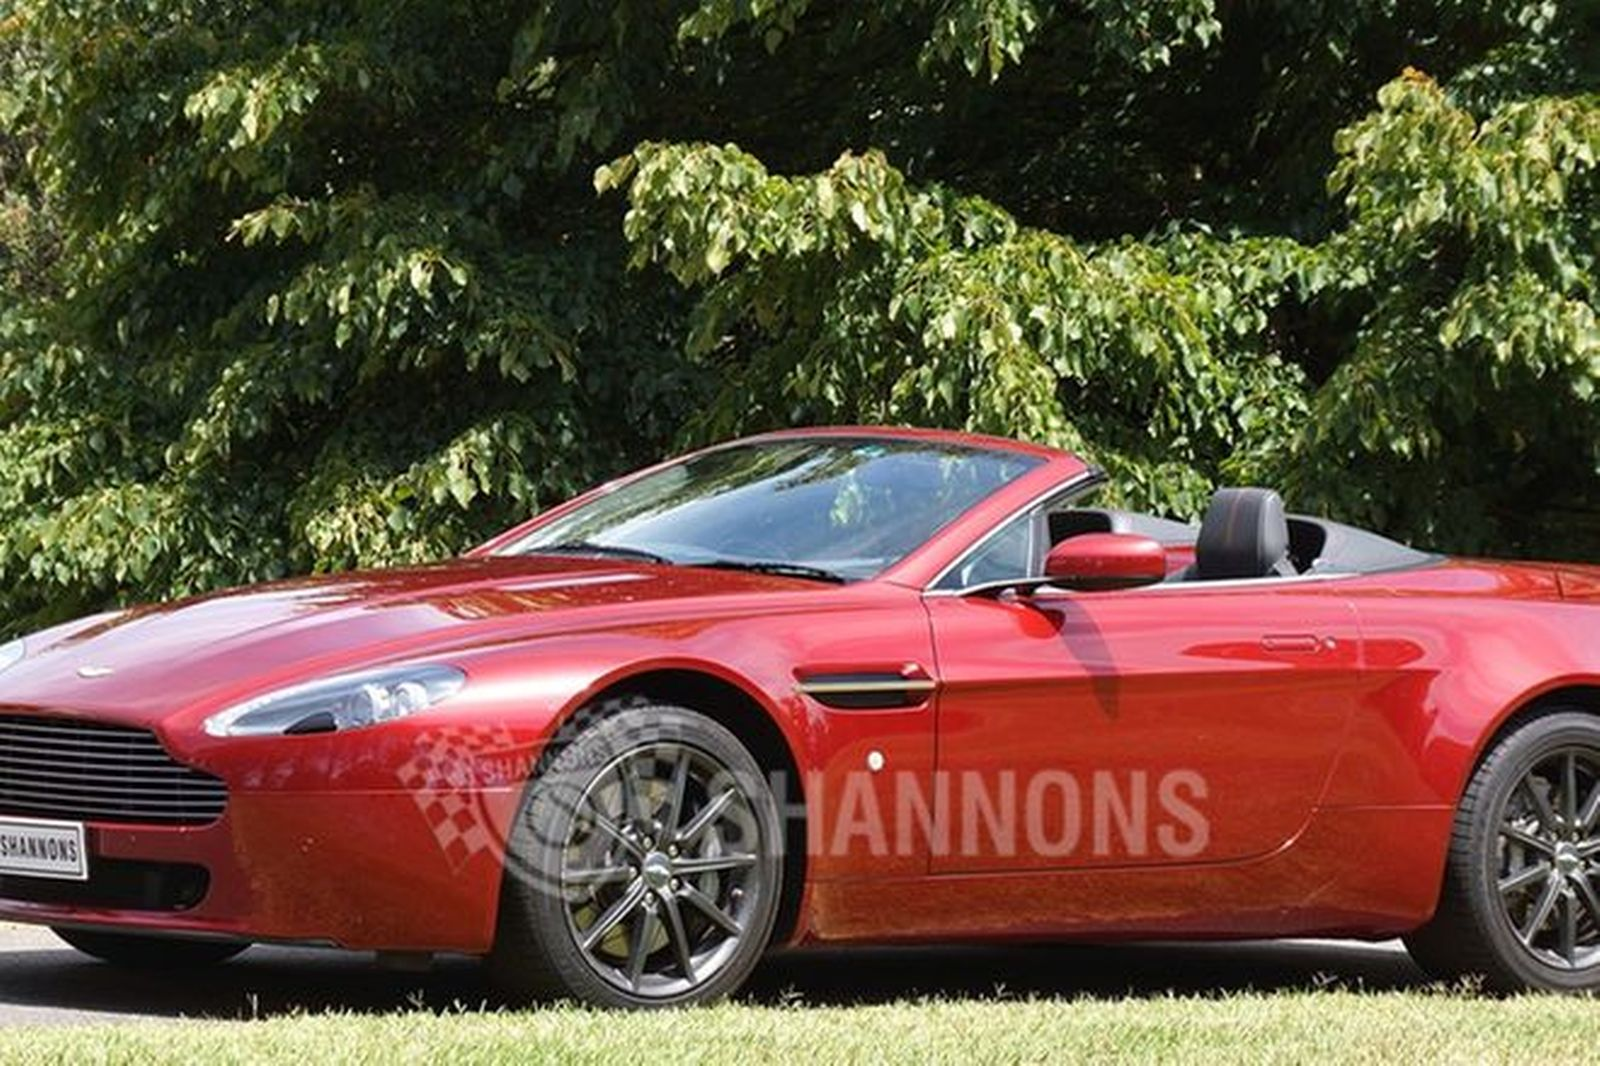 sold: aston martin v8 vantage convertible auctions - lot 32 - shannons